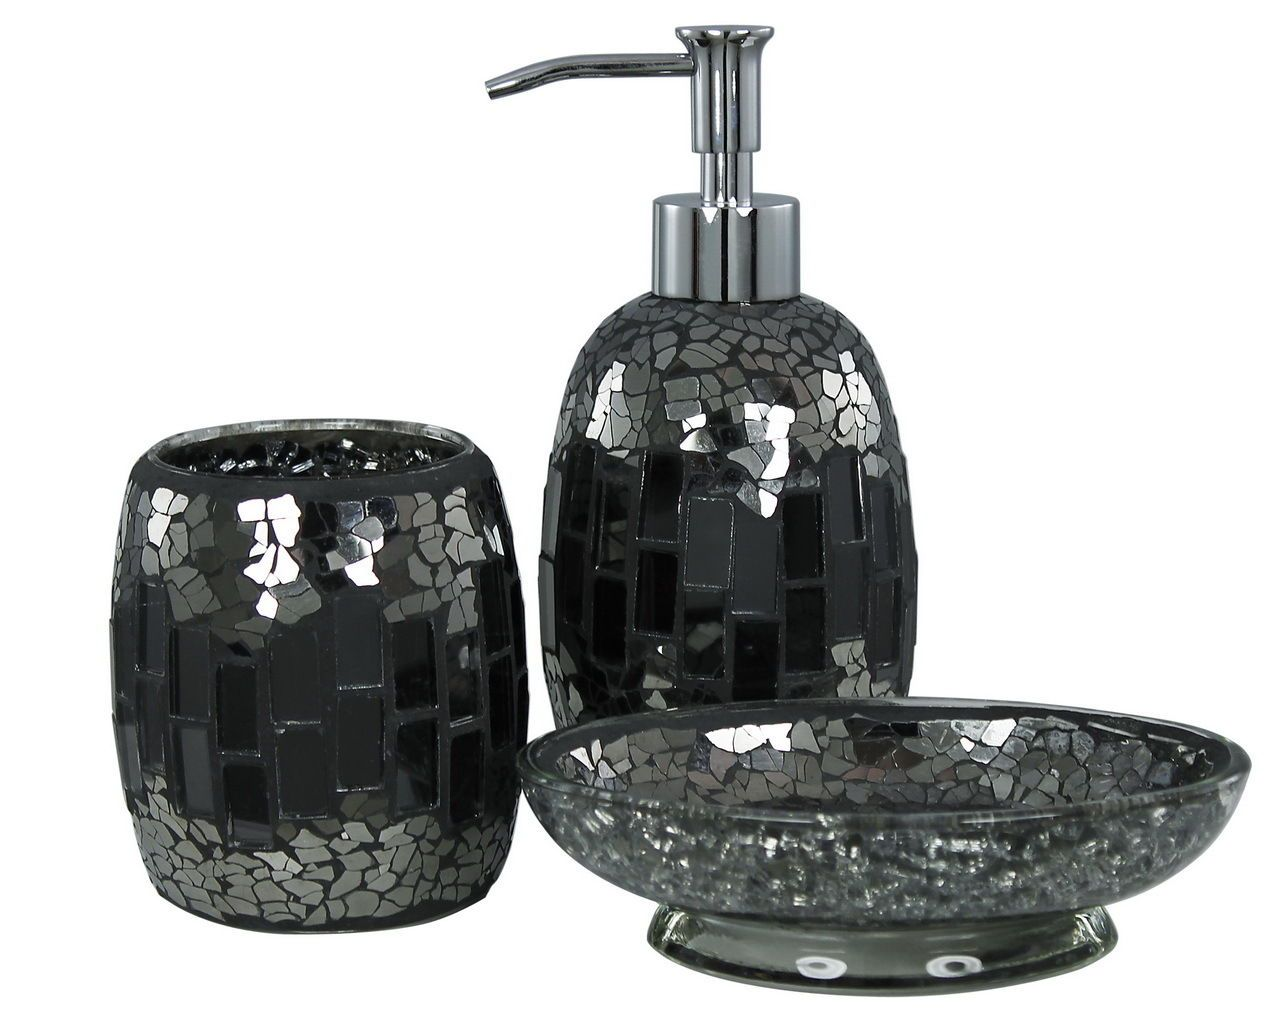 Mosaic Soap Dispenser Set 3 PIECE Black Sparkle Glass Bathroom Dish